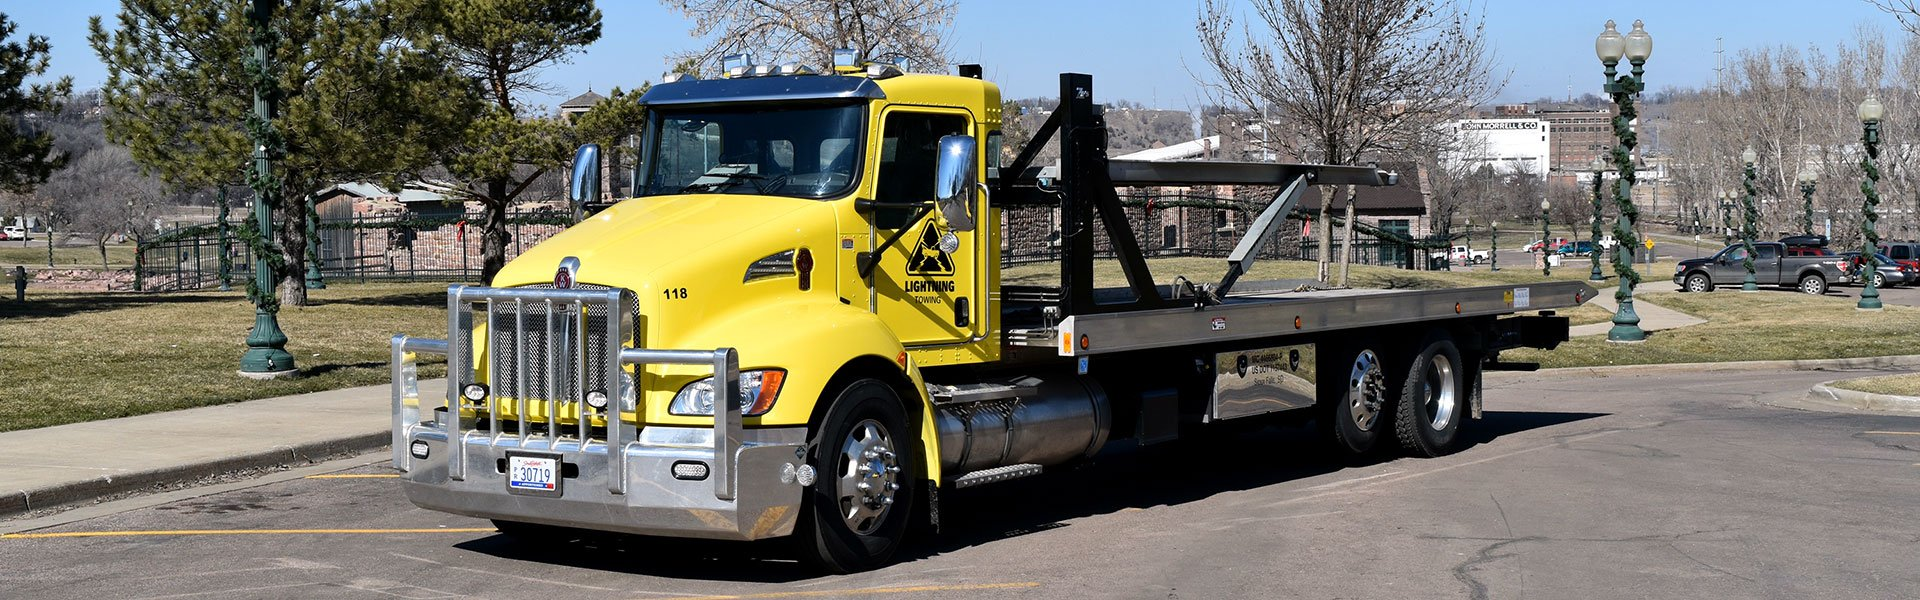 Lightning Towing Tow Truck Service Sioux Falls